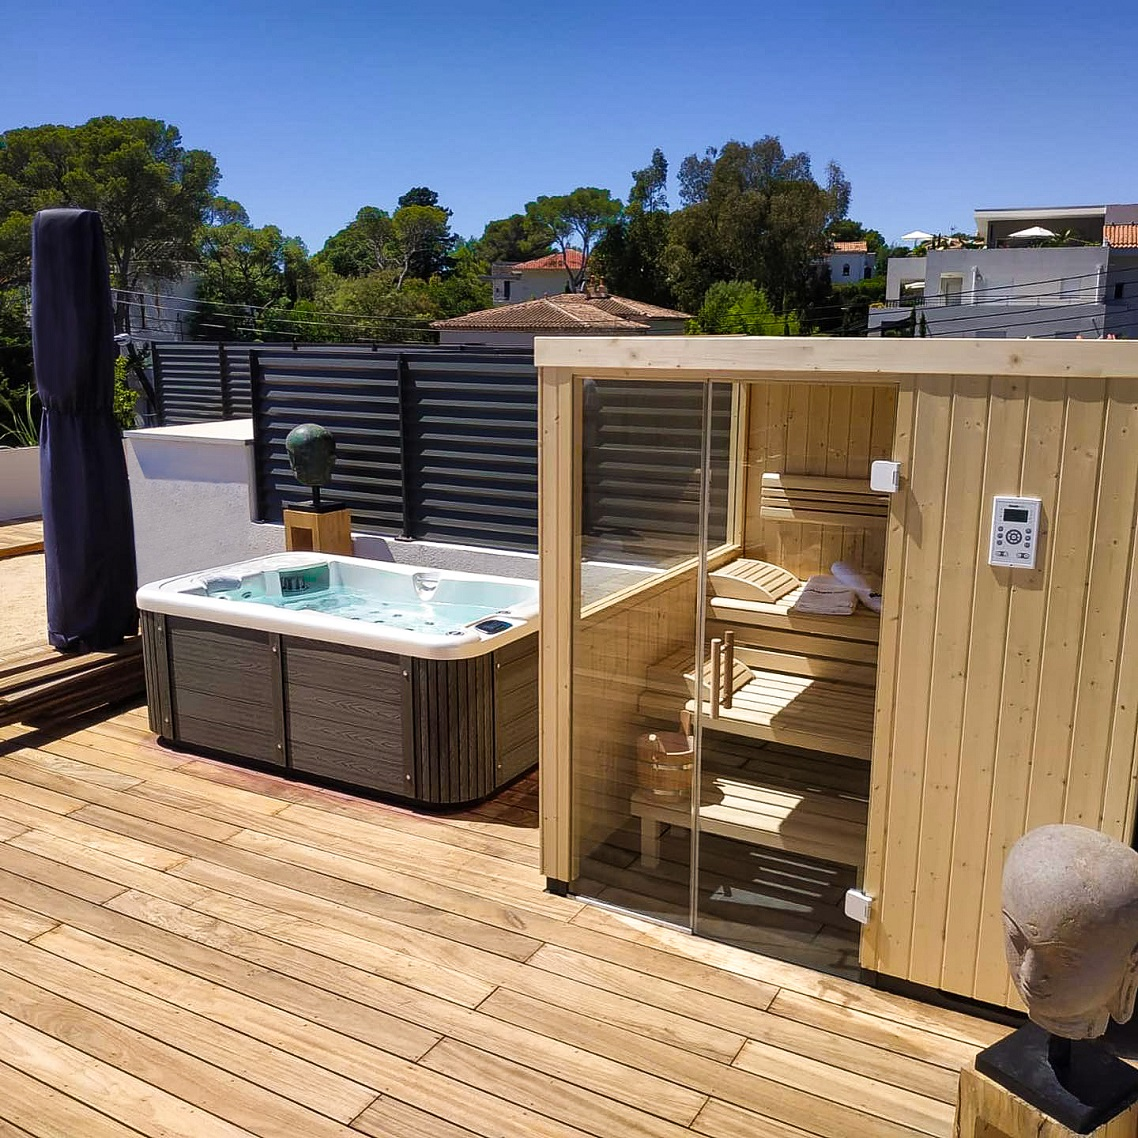 Outdoor whirlpool Lara Mini New on the terrace with luxurious Lacan TT sheathing - Canadian Spa International®